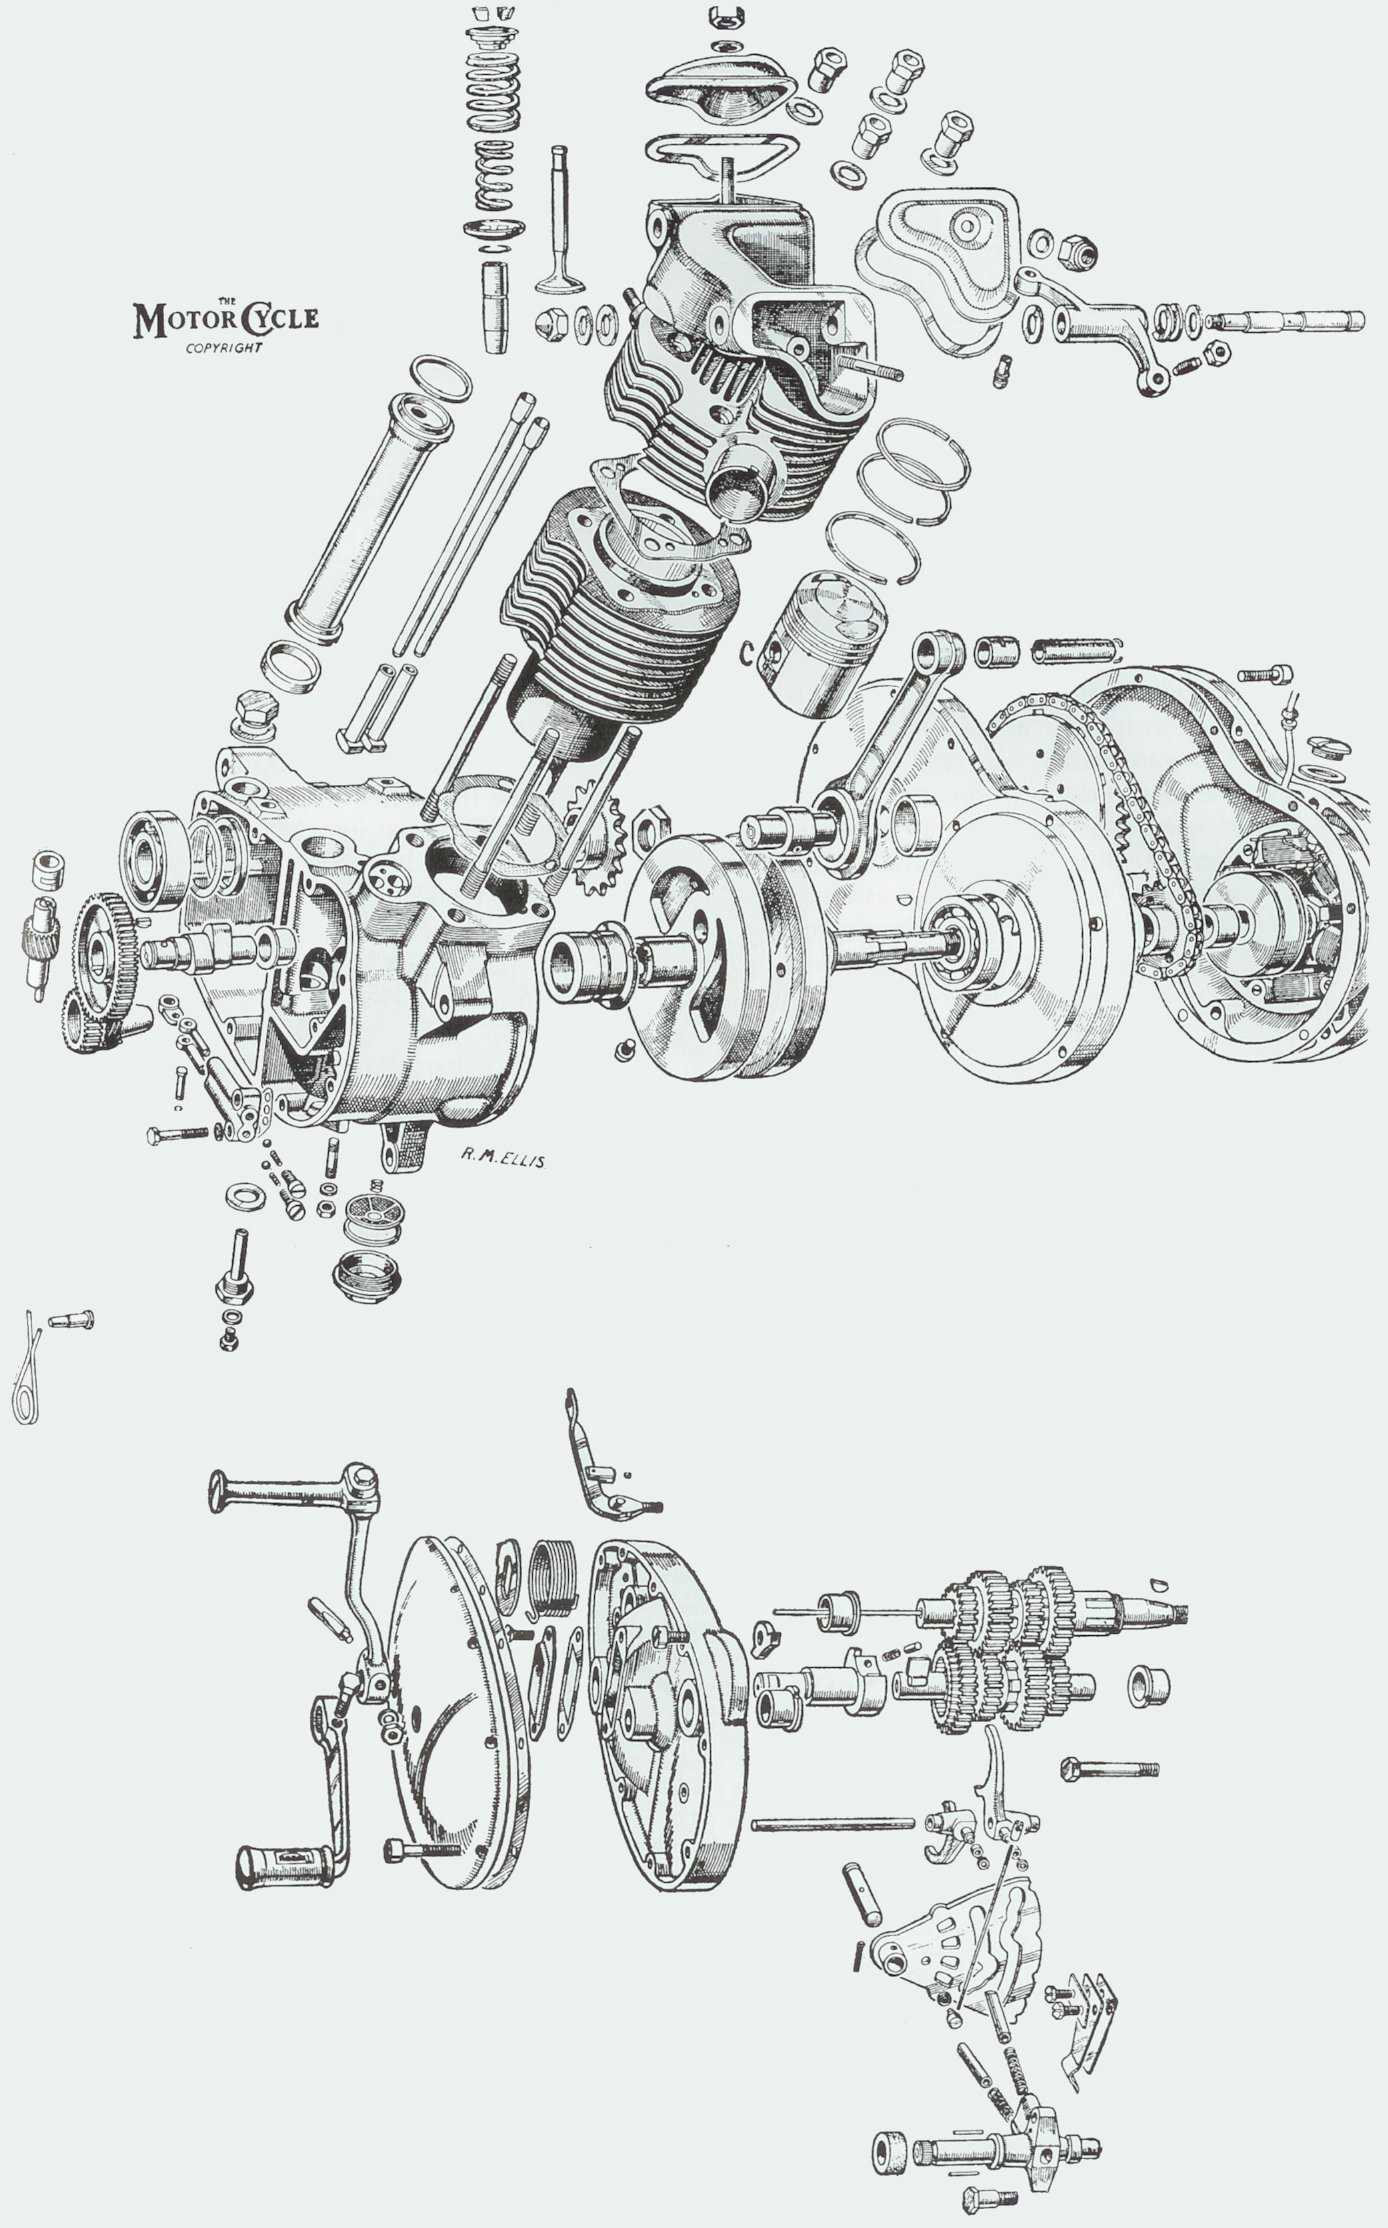 Bear Tracker Yfm250x likewise Cadillac Rear Suspension Diagram further 3asoo Rancher 420 Worked Fine When Fed Cows Next Time Go moreover 1952 single T15 T20 in addition P 0900c152800717d4. on triumph wiring diagrams